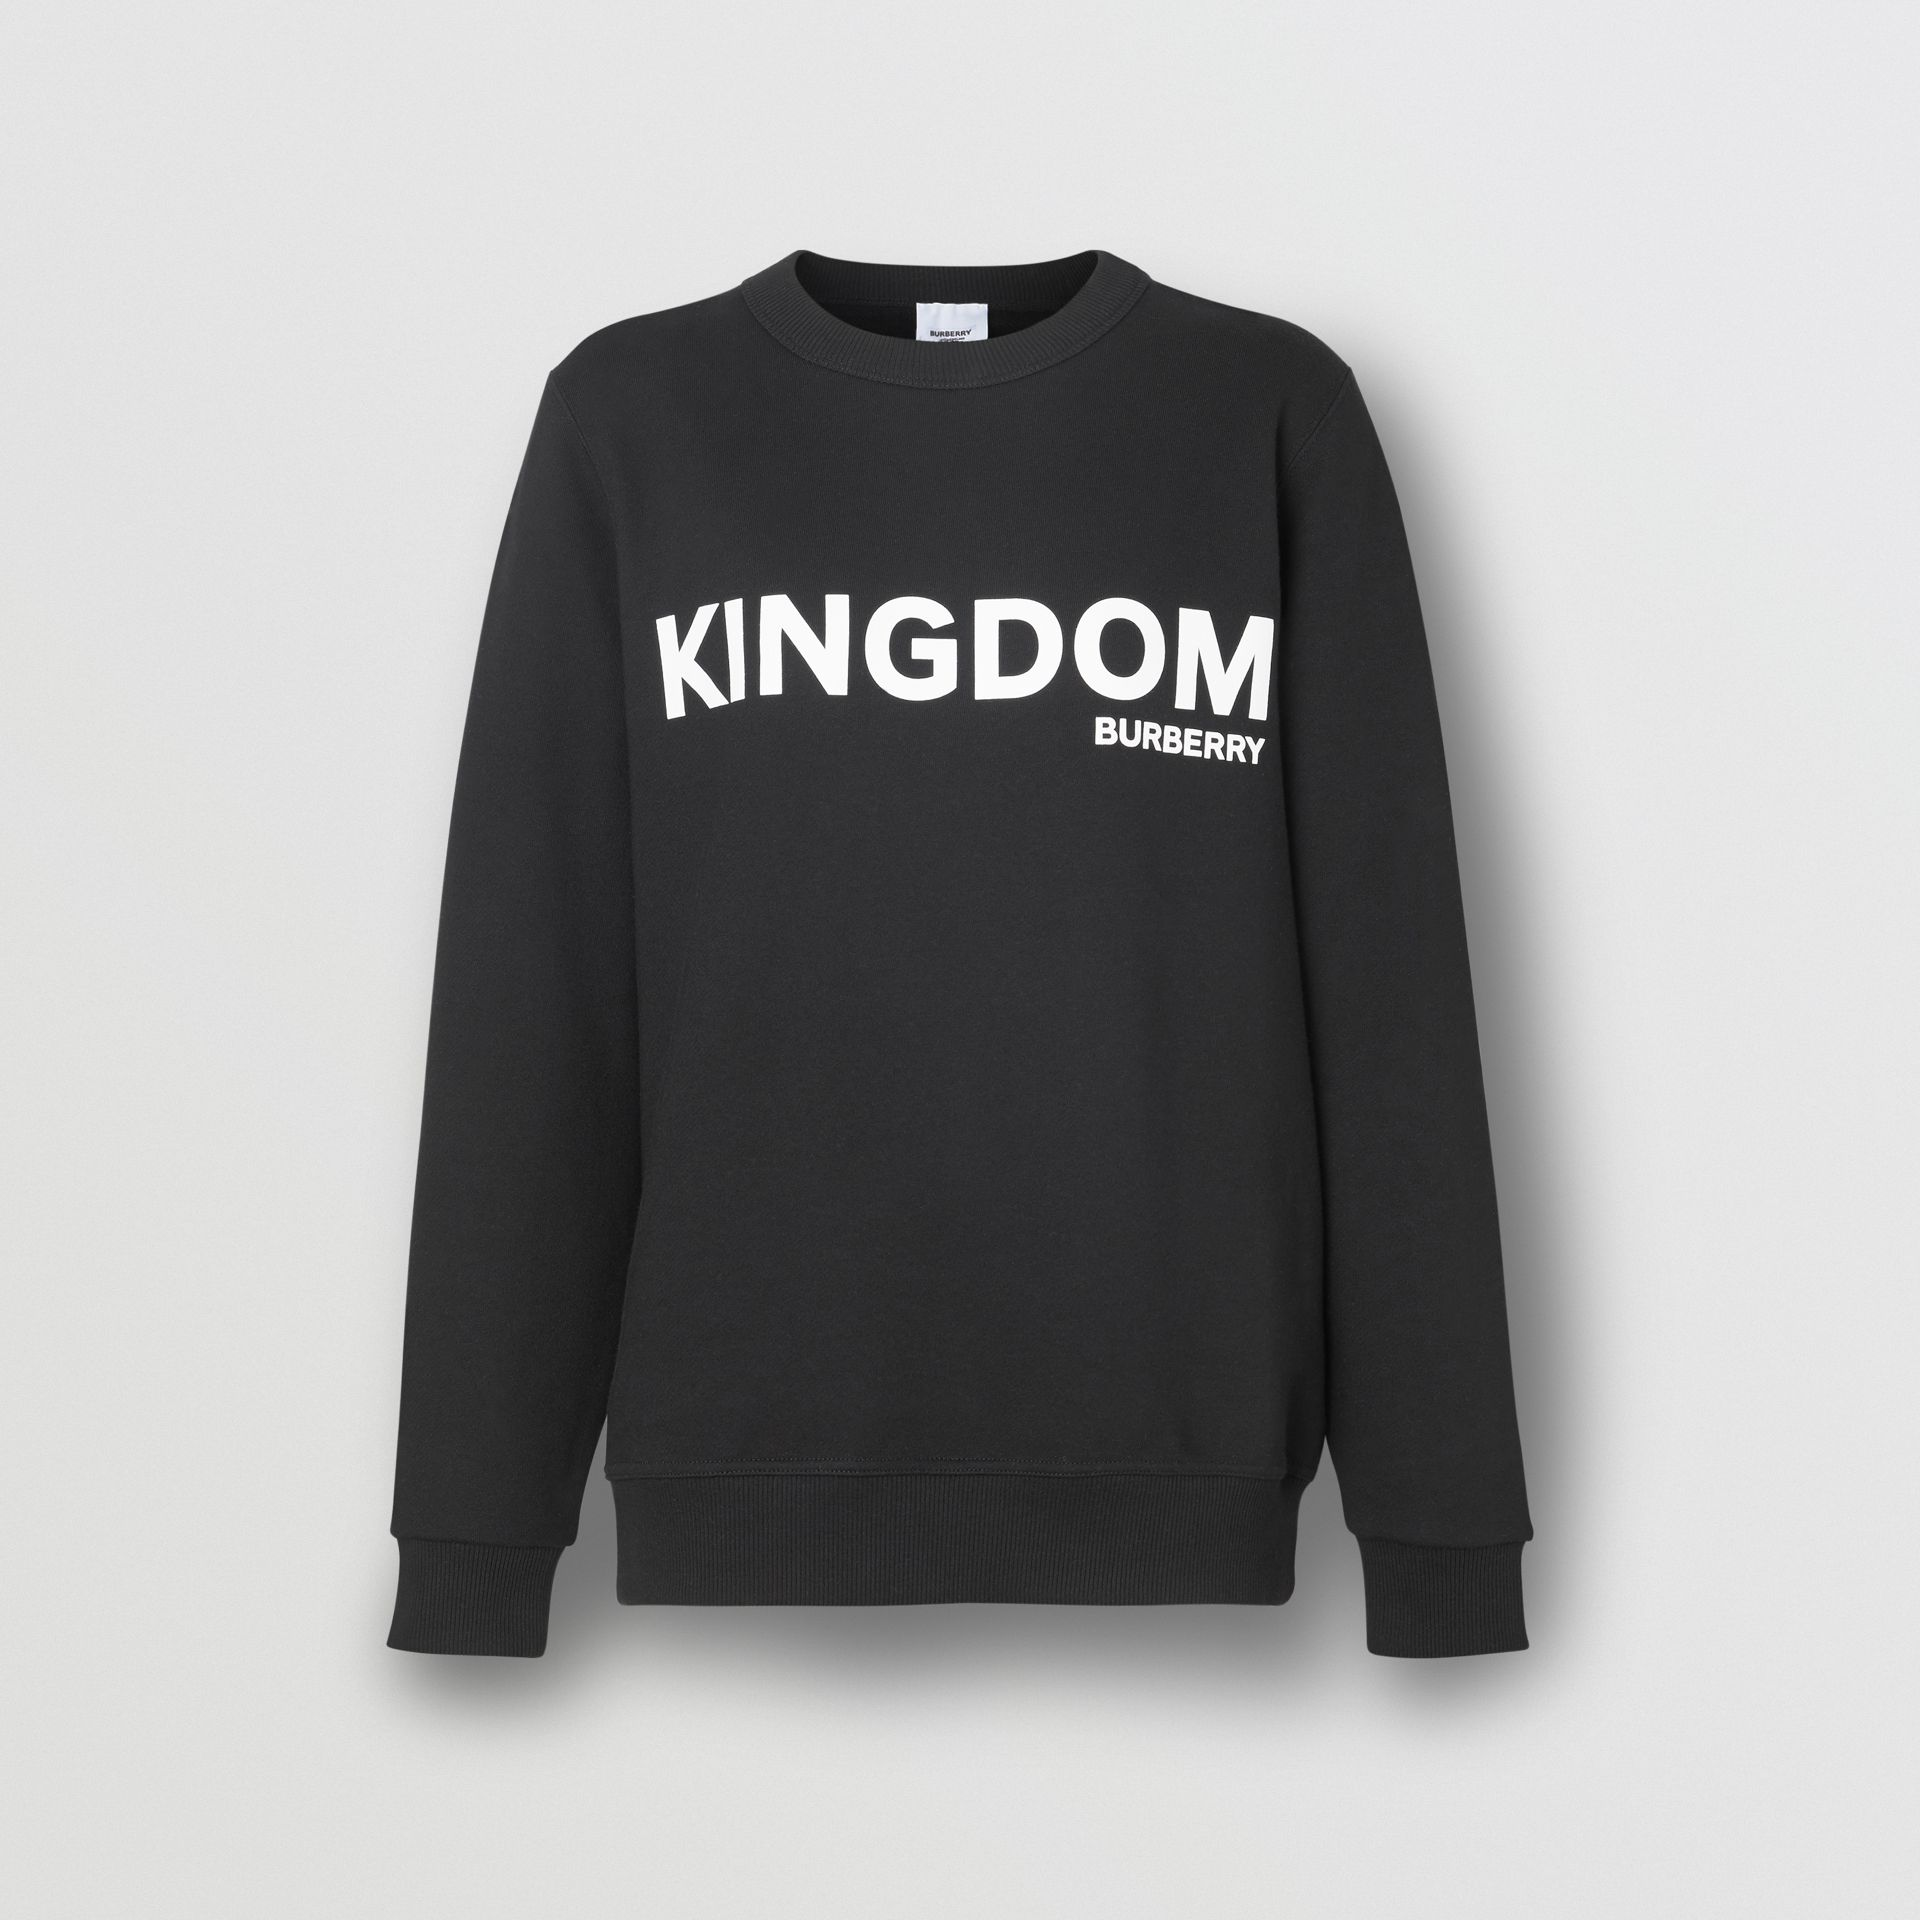 Kingdom Print Cotton Sweatshirt in Black - Women | Burberry Singapore - gallery image 3